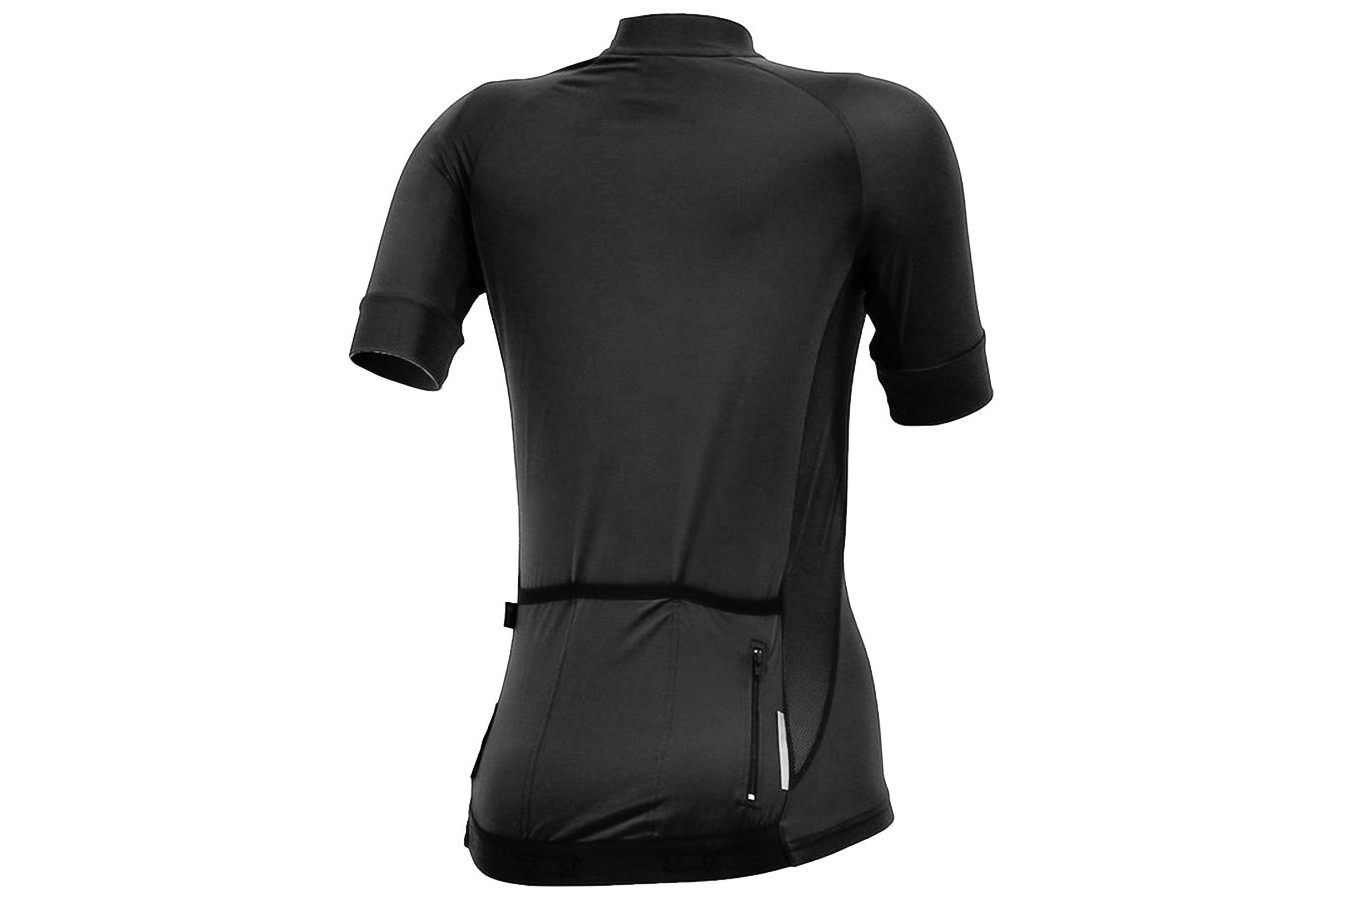 Camisa para Ciclista Feminina Ellegance All Black - Márcio May